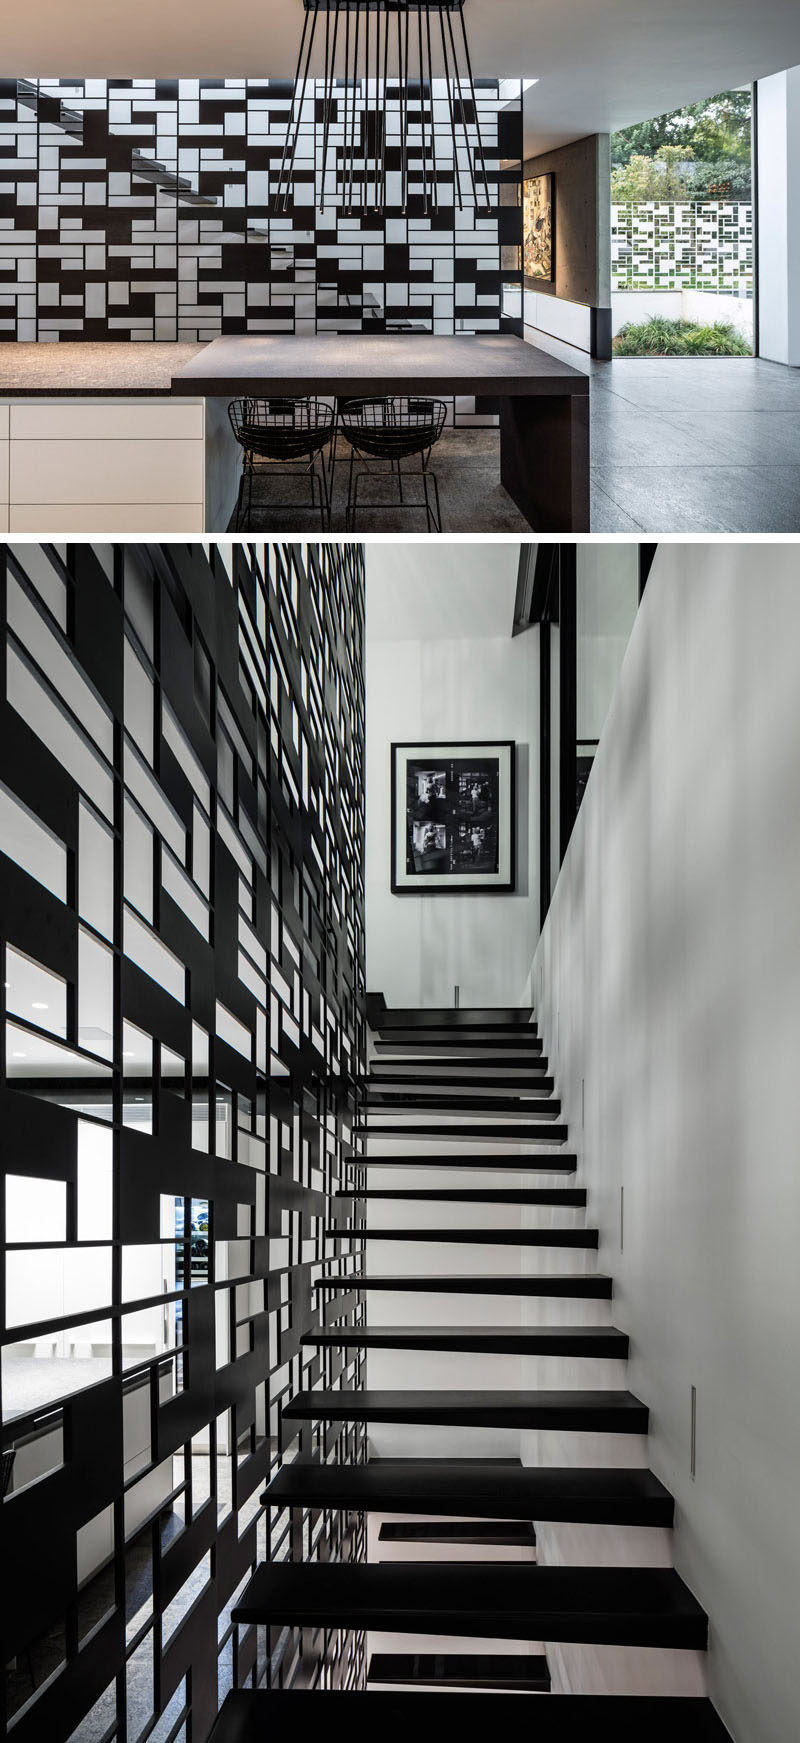 The black metal safety railing protecting one side of this staircase matches the design of a white fence that surrounds the house, creating continuity throughout the house and adding extra safety to the stairs.